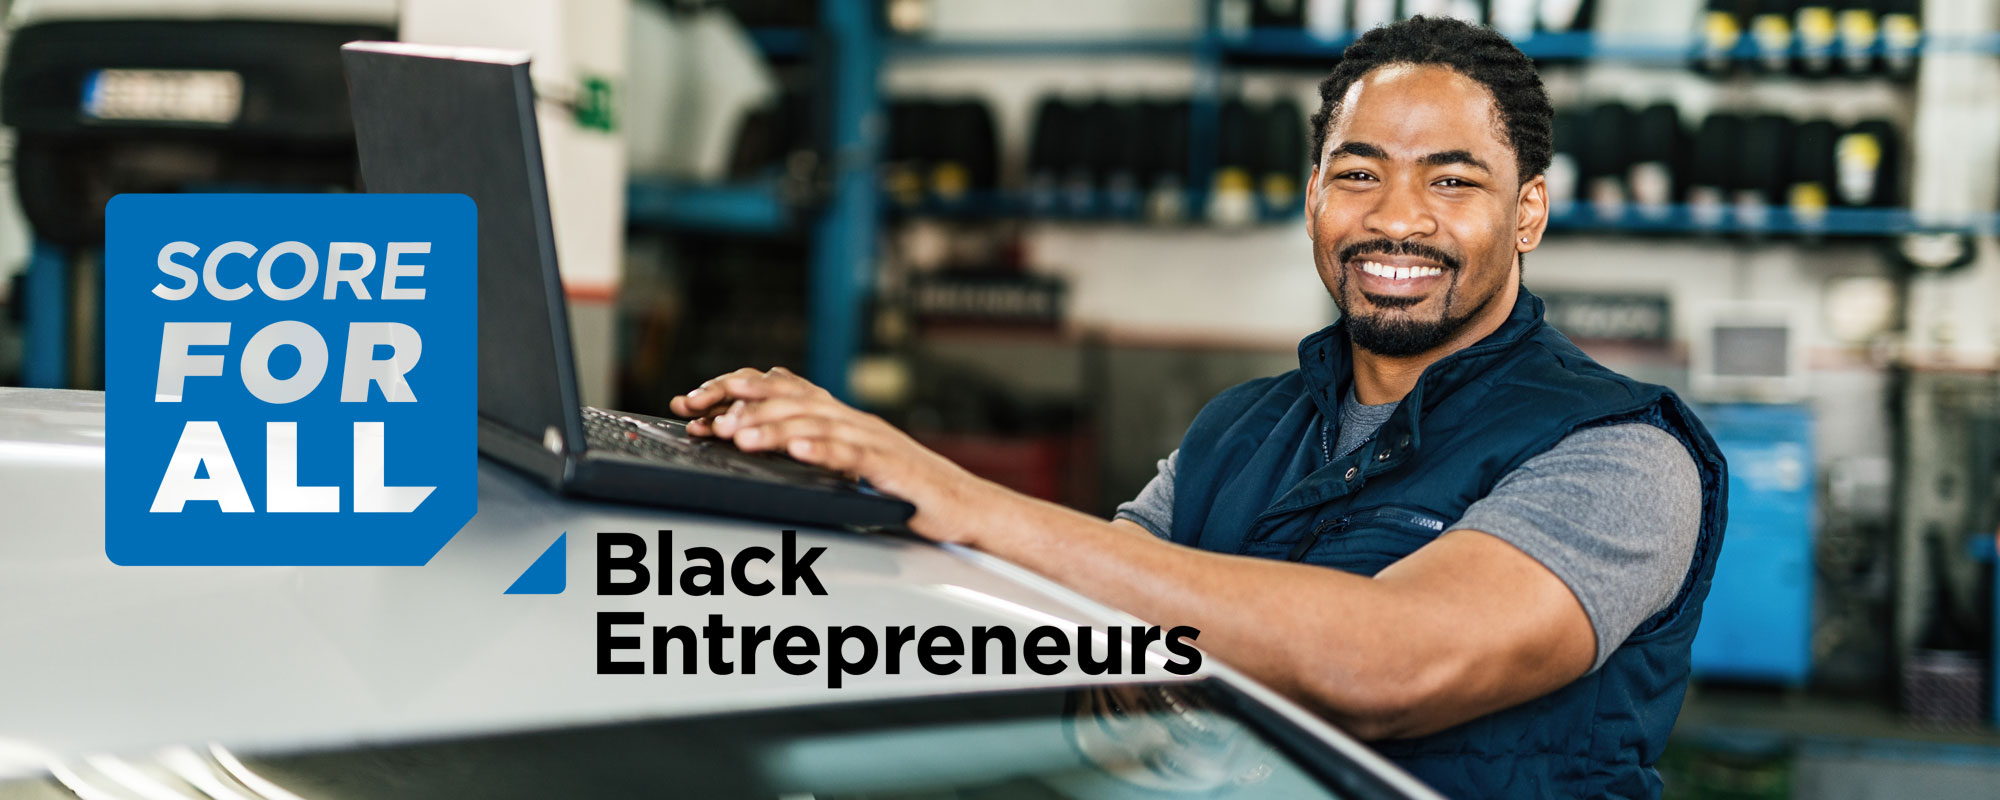 SCORE for Black Entrepreneurs